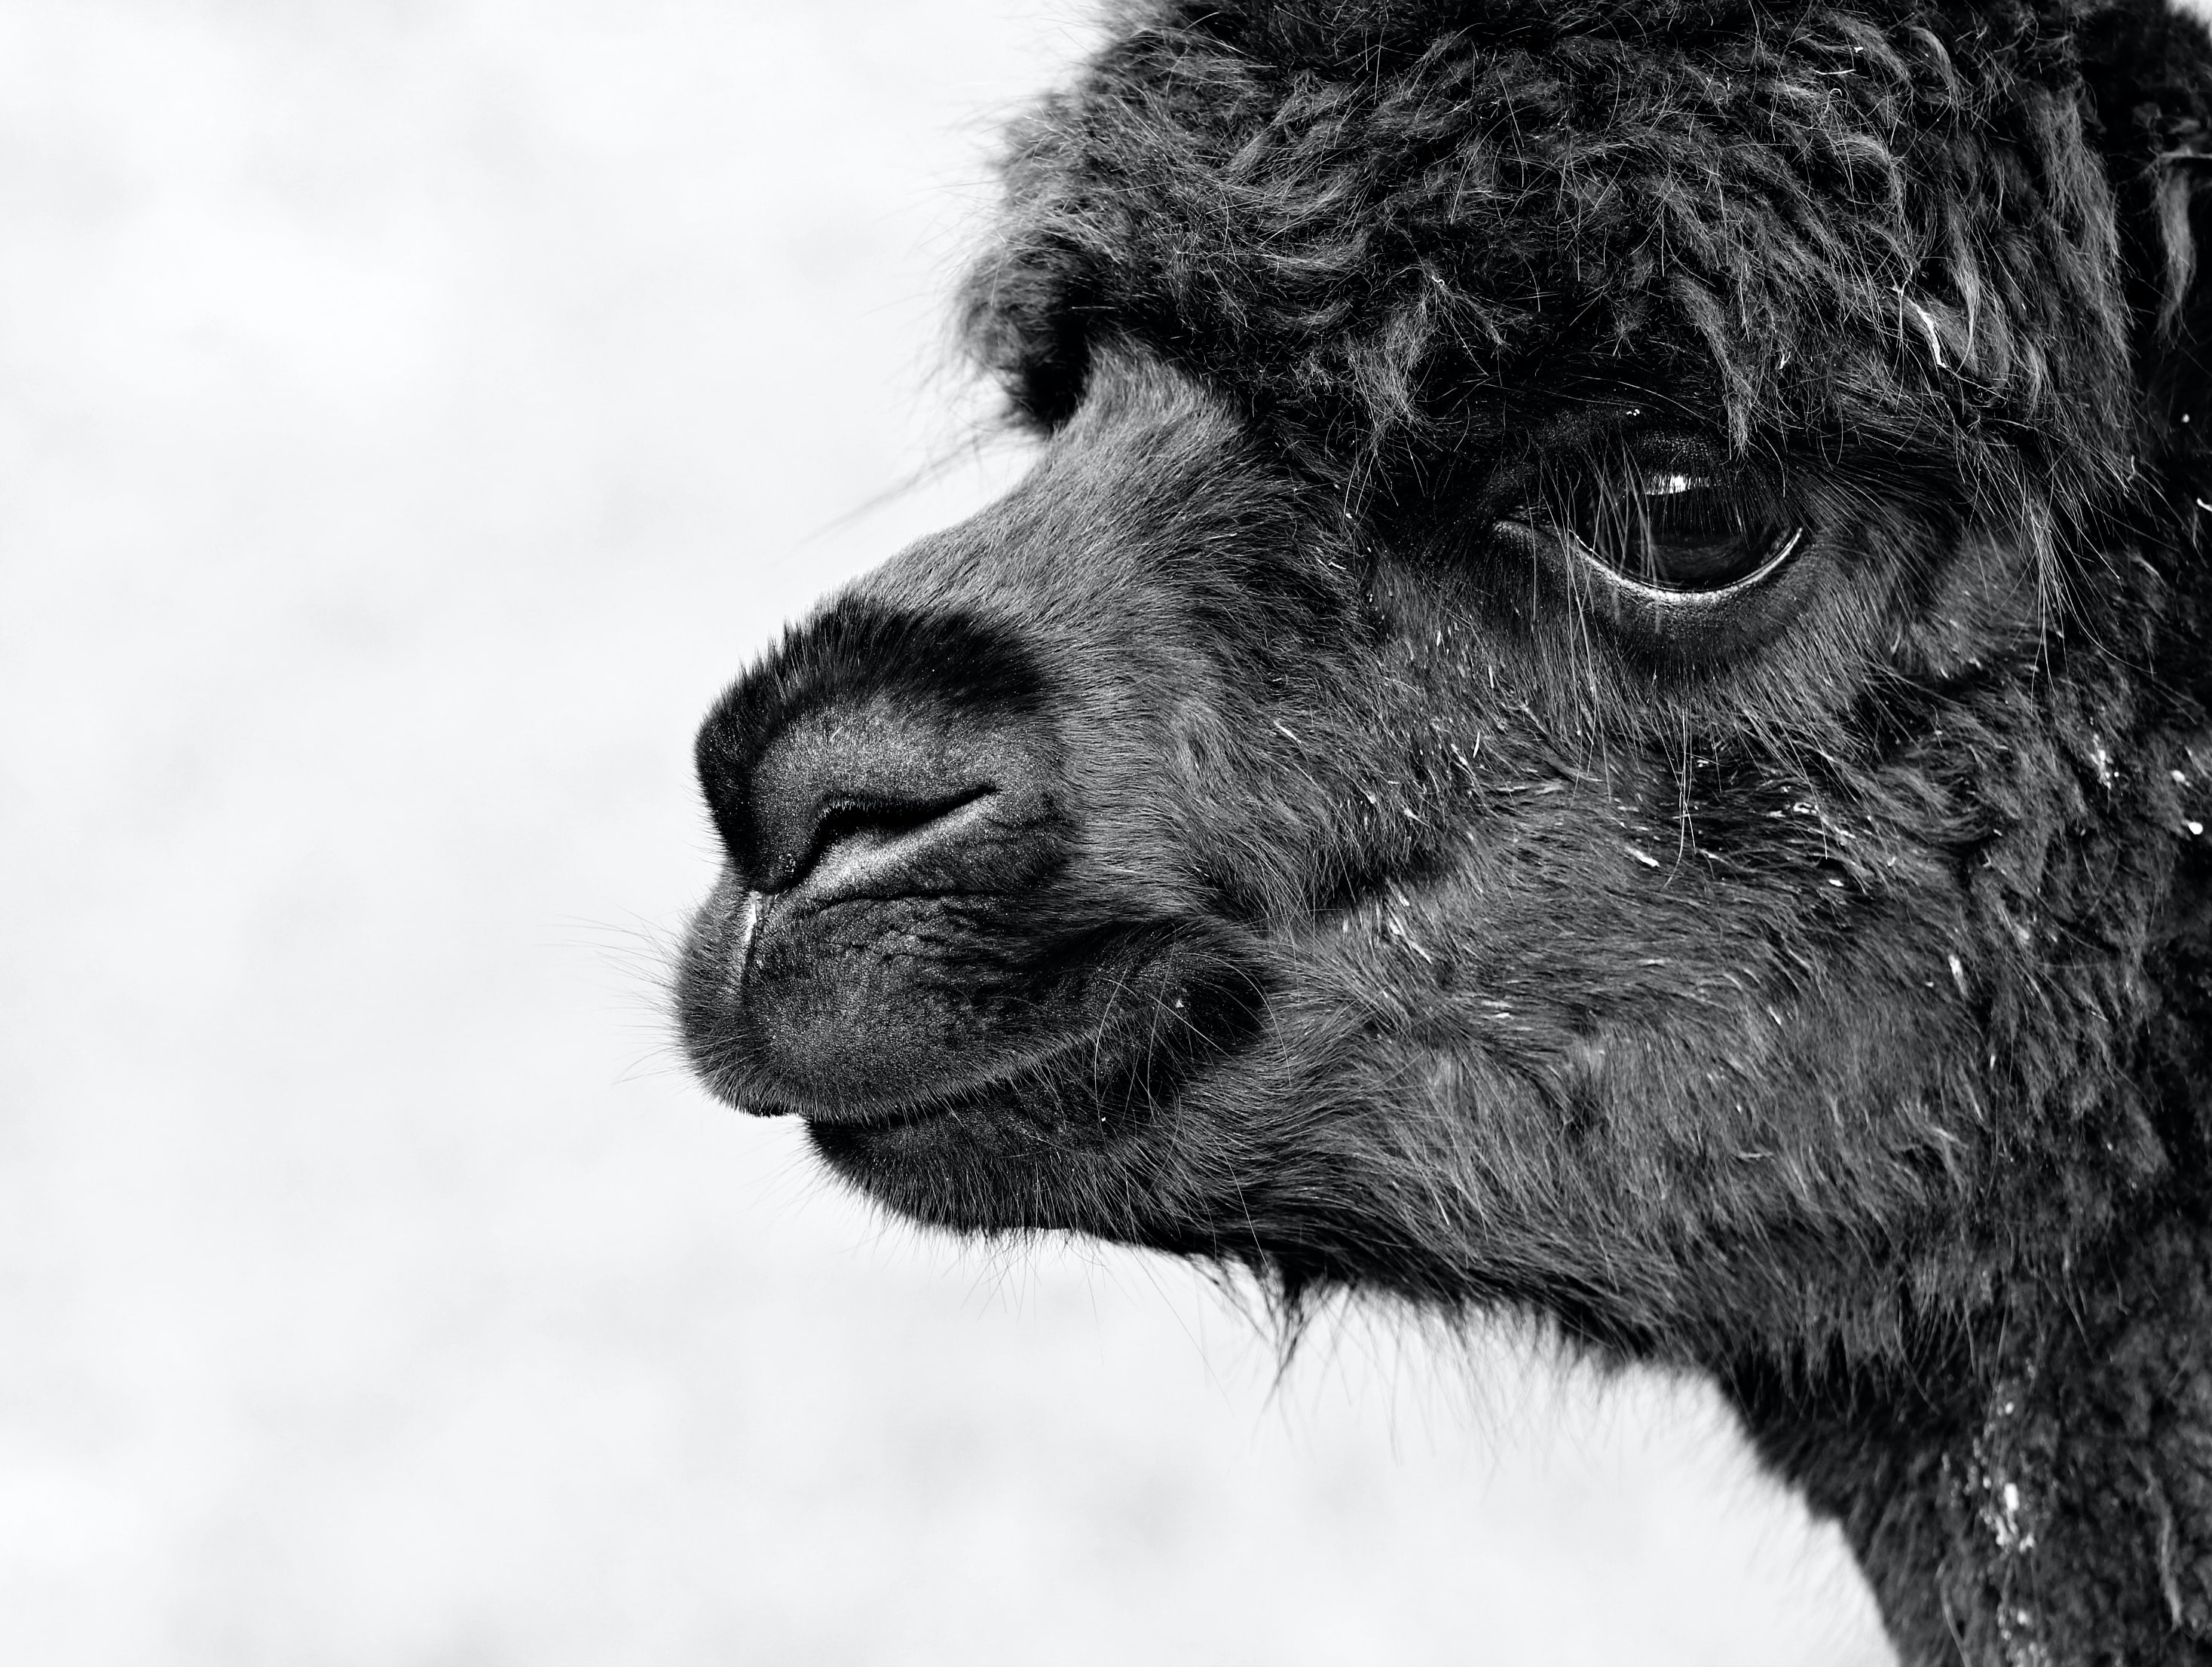 Black-and-white photo of a young black alpaca in profile.